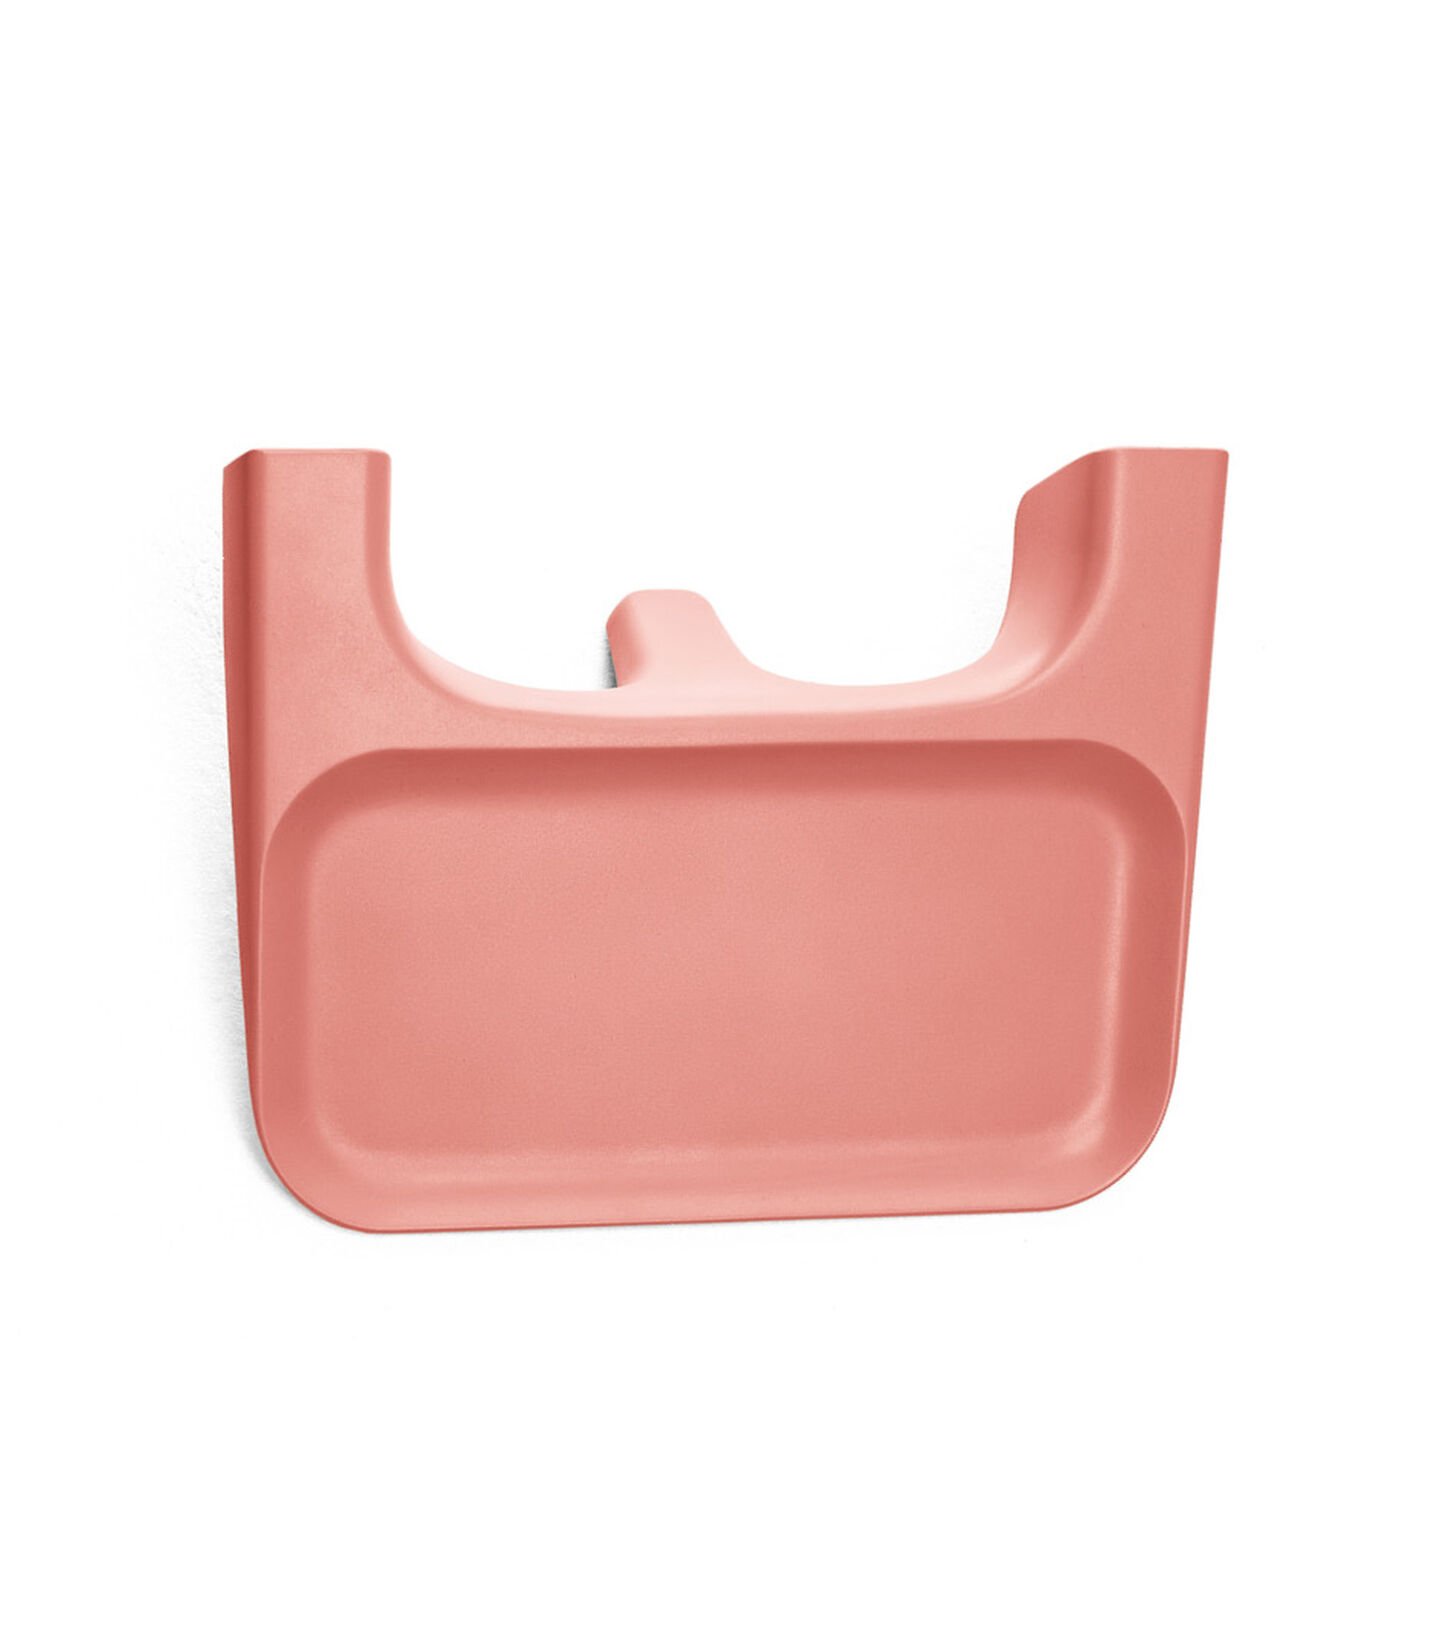 Stokke® Clikk™ Tray Sunny Coral, Sunny Coral, mainview view 2